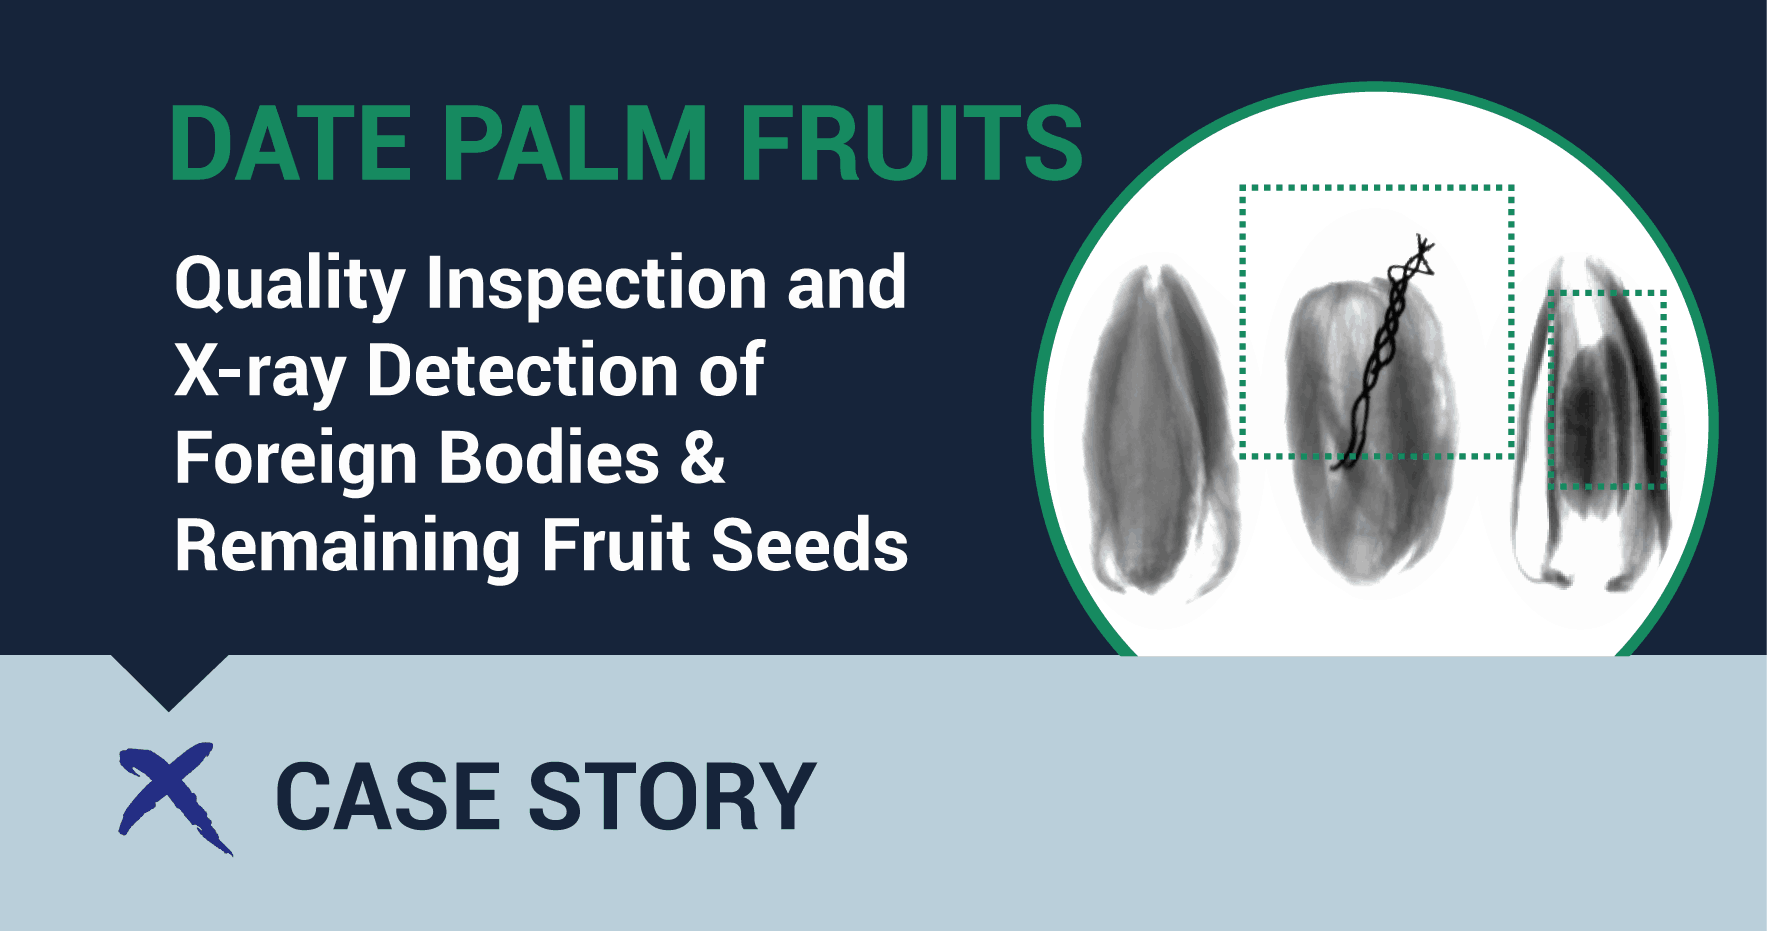 date palm fruit quality